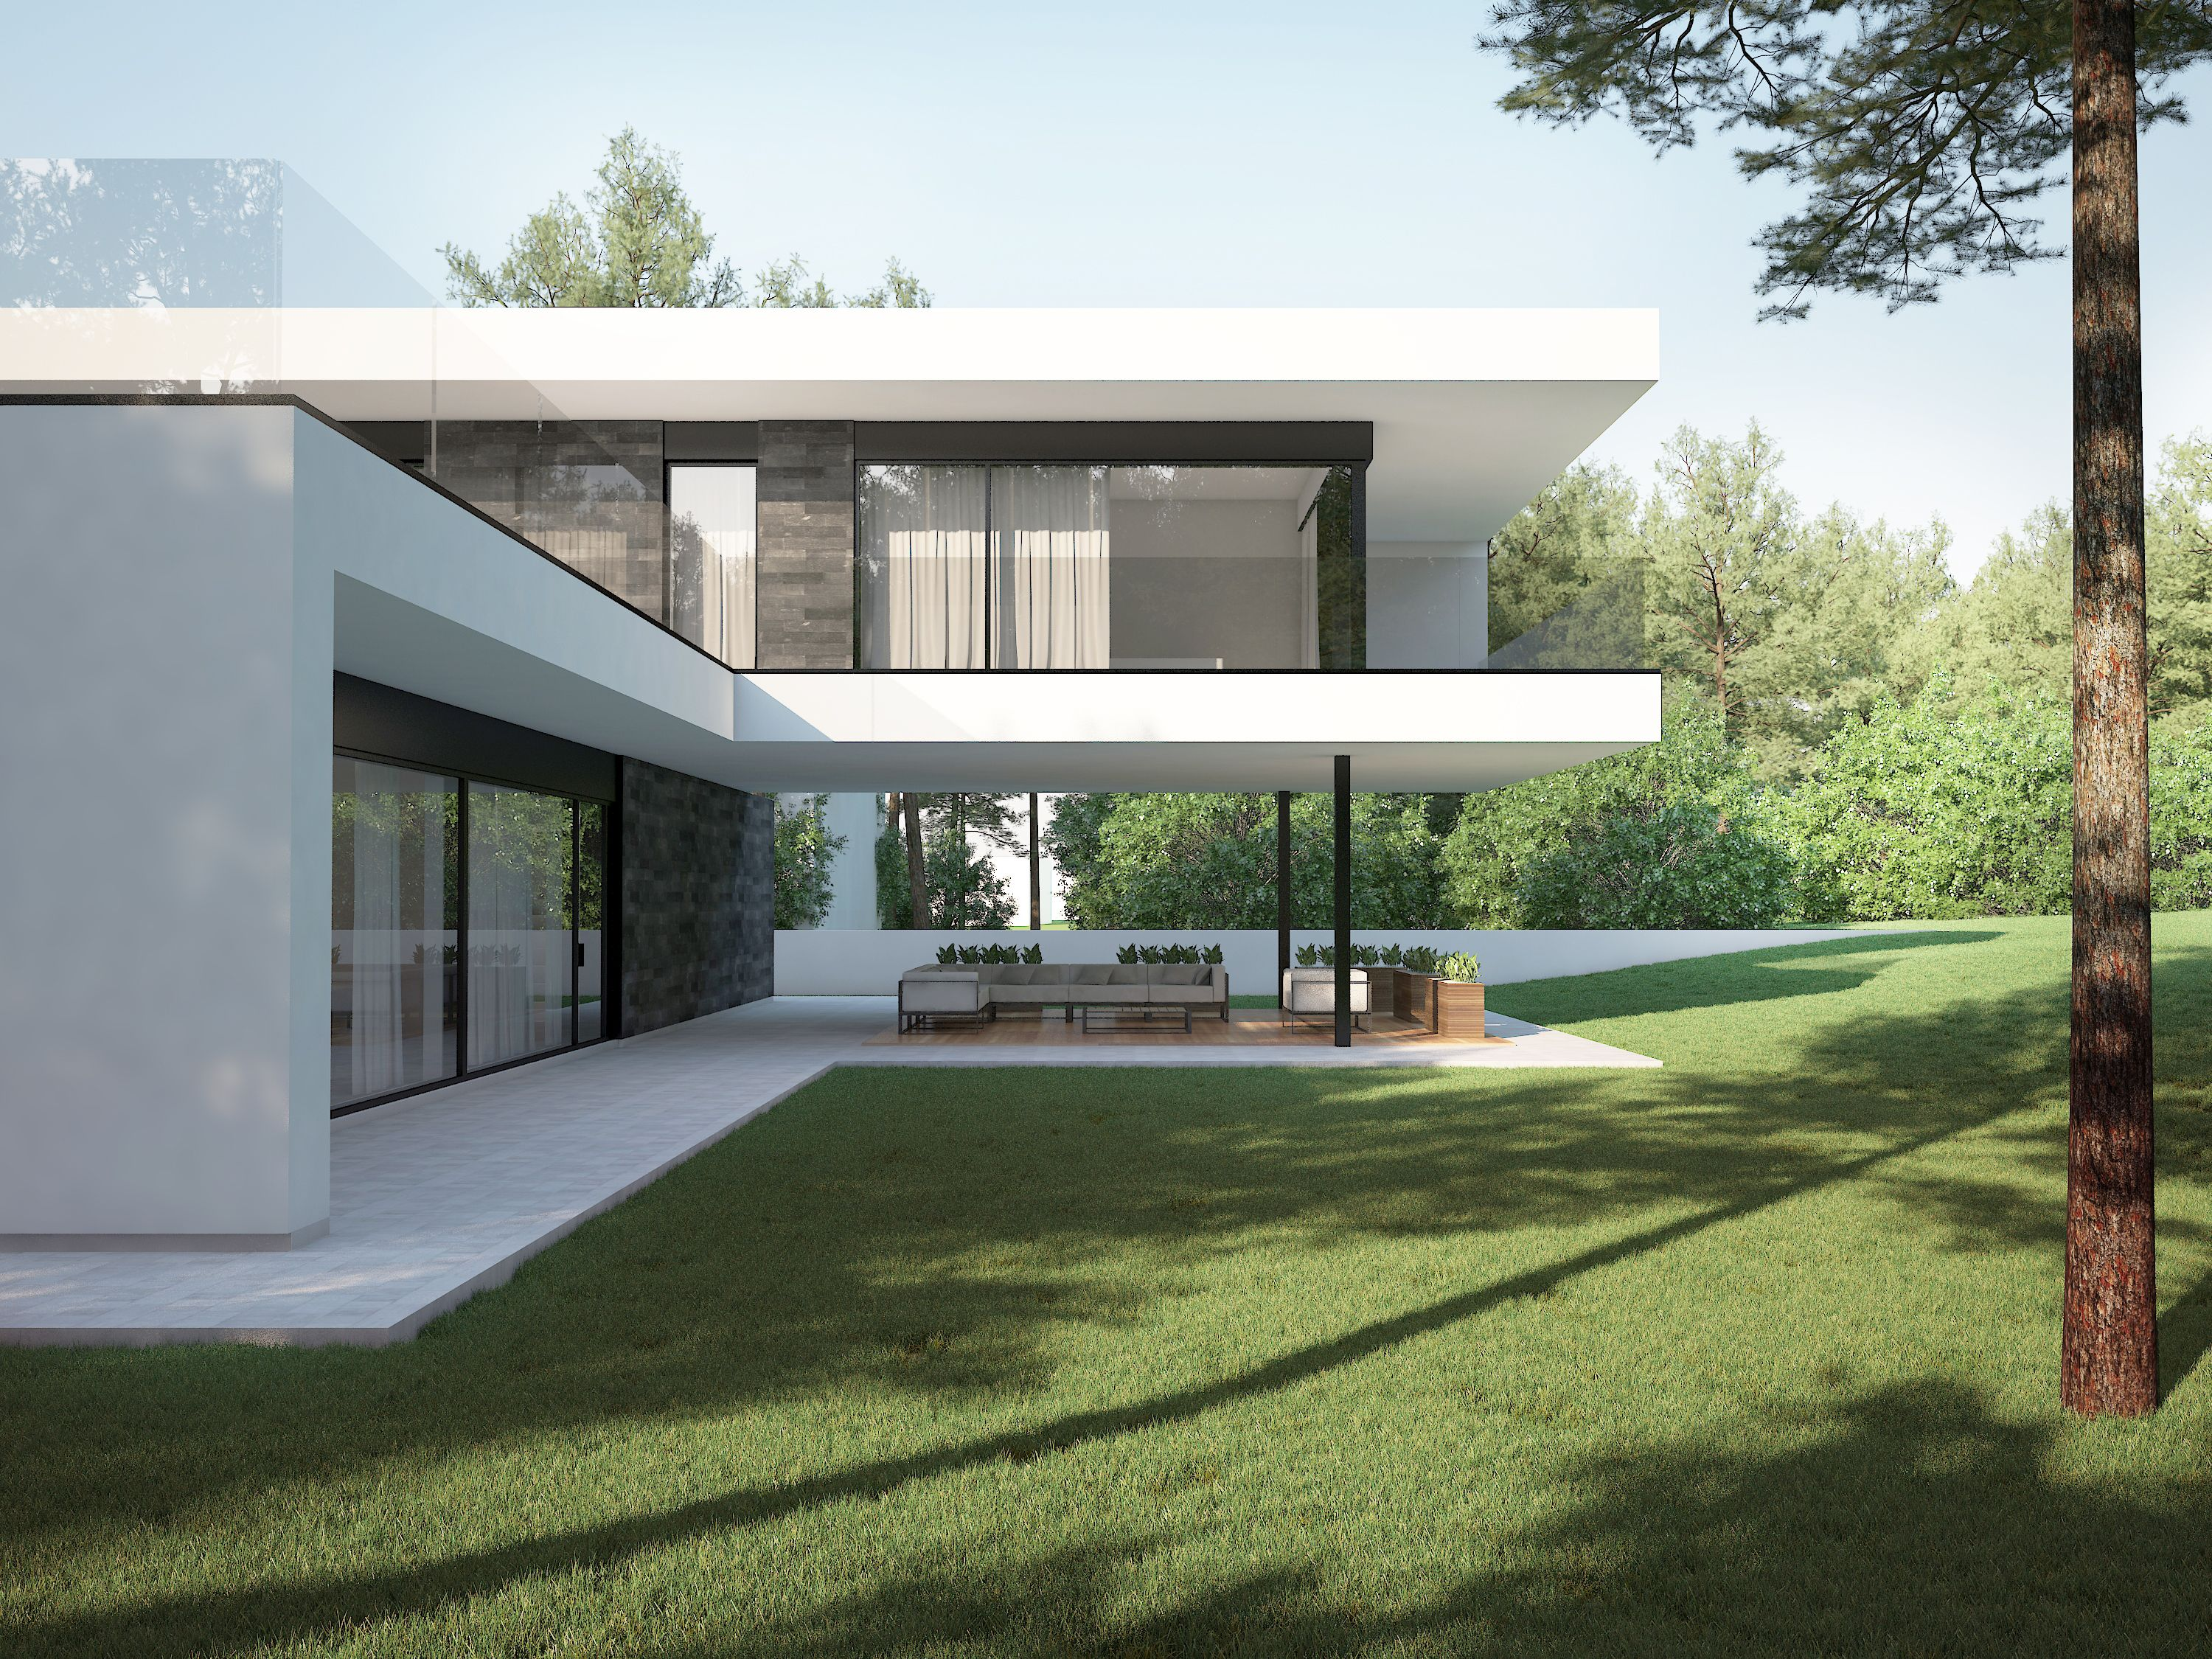 Villa landhaus modern  Modern house in Kaunas by NG architects www.ngarchitects.lt | NG ...